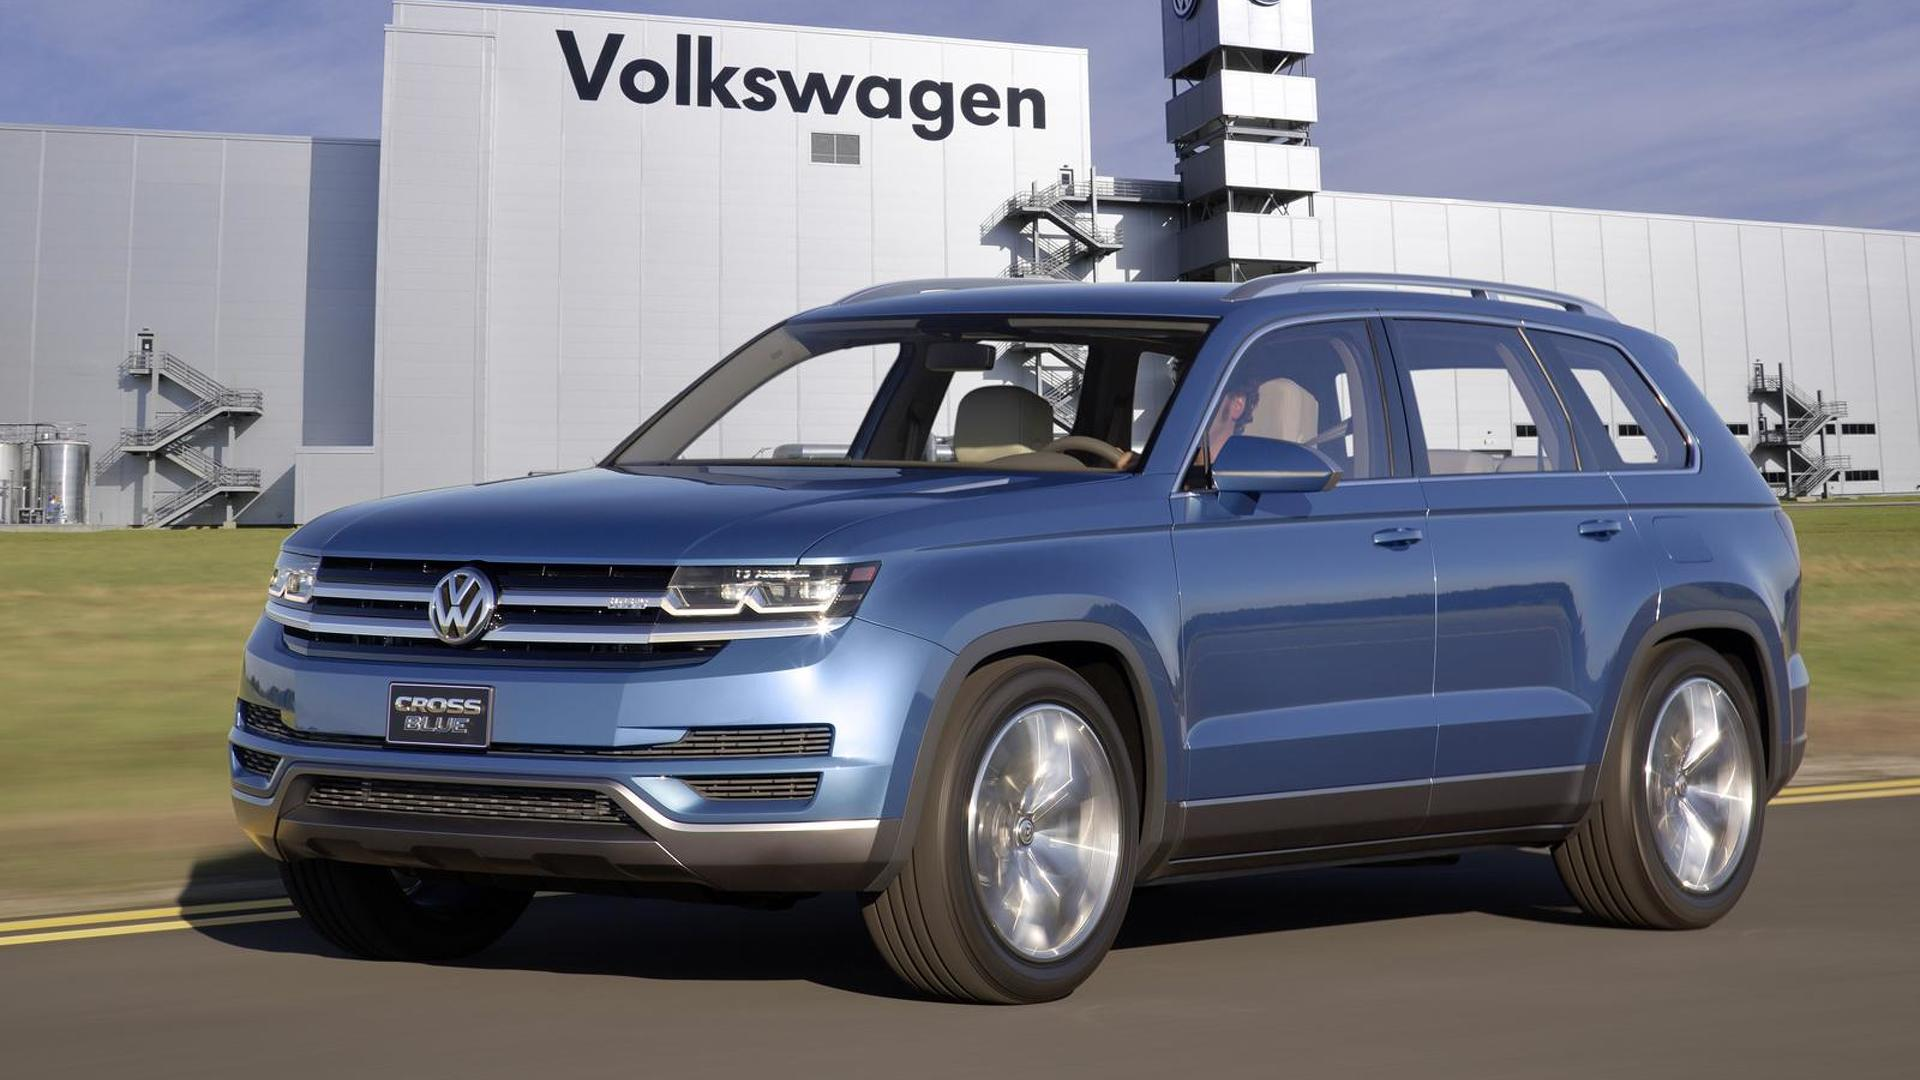 Vw Of America >> Vw Of America Gets To Bestow Name On New Suv